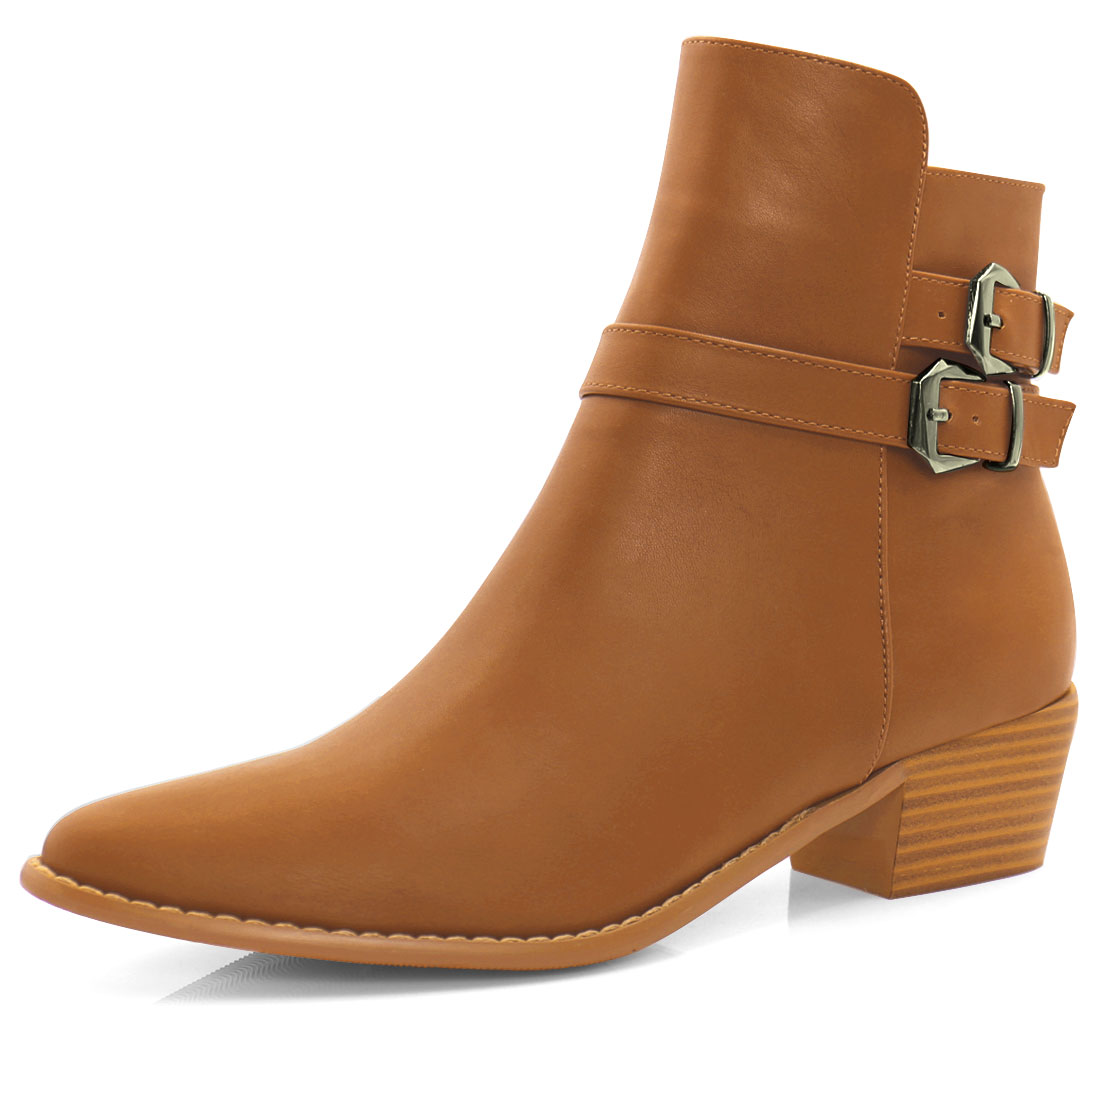 Women Pointed Toe Buckled Strap Zipper Ankle Boots Brown US 7